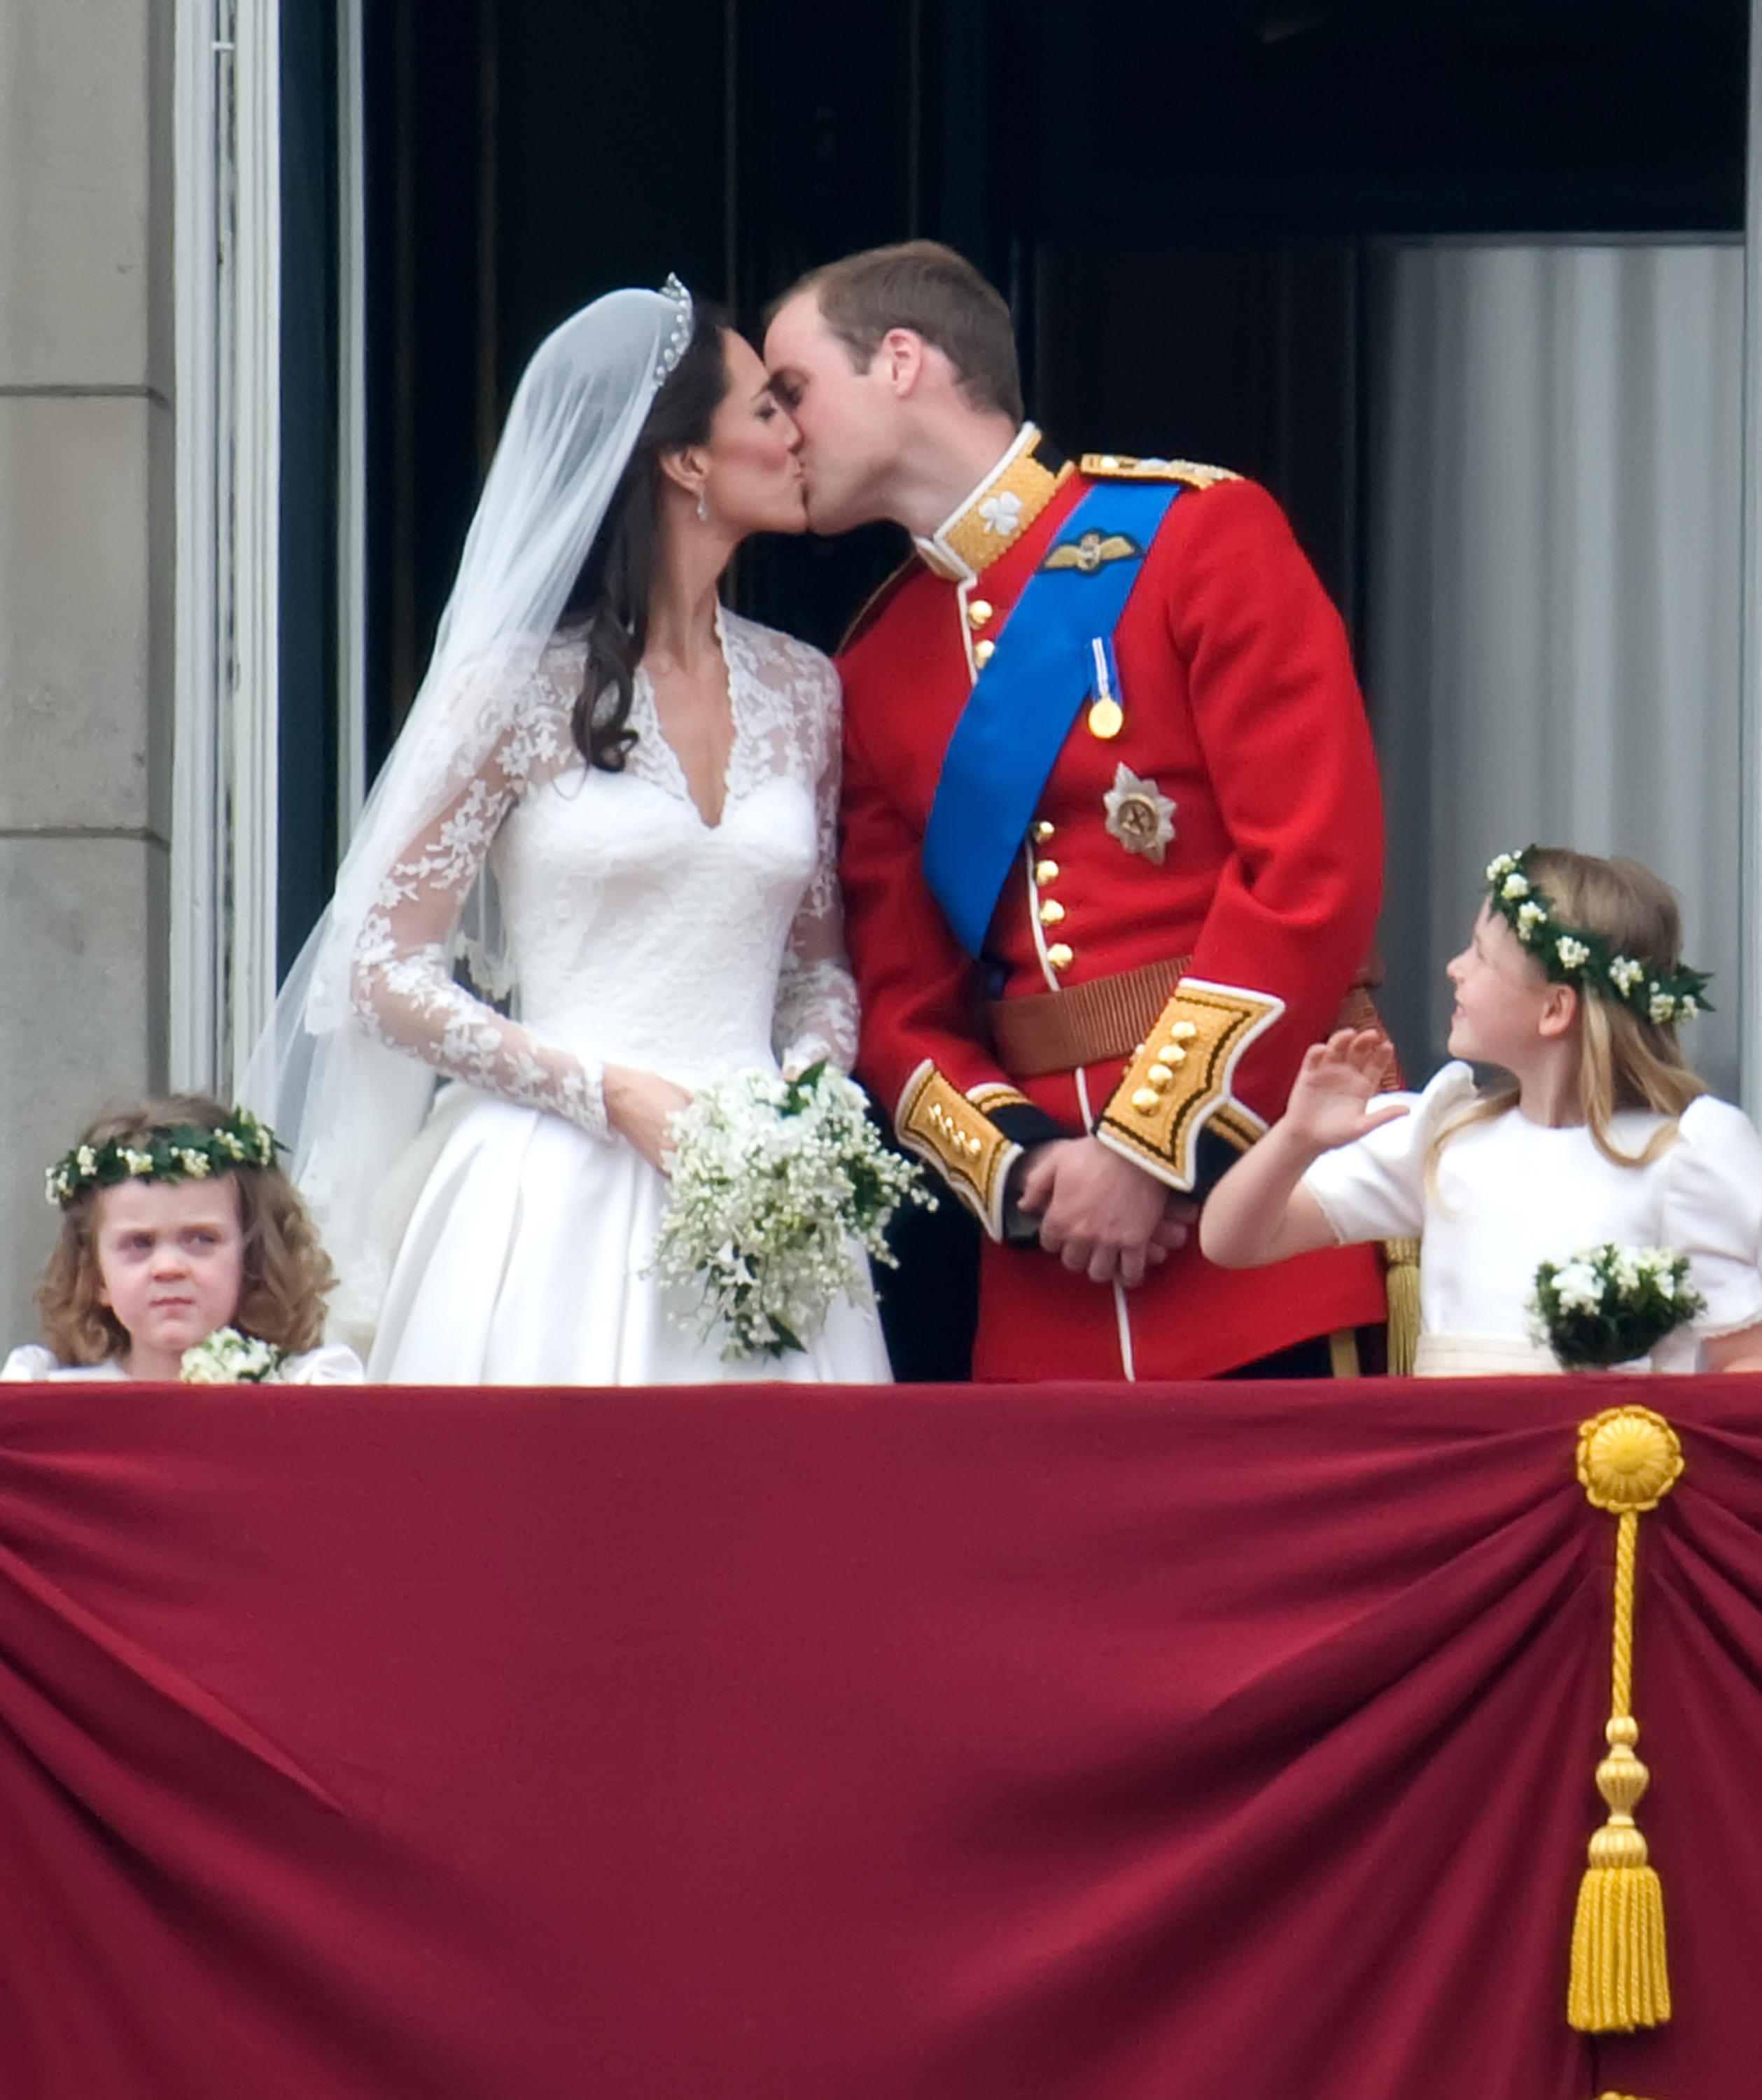 Kate Middleton in her wedding dress, kissing Prince William